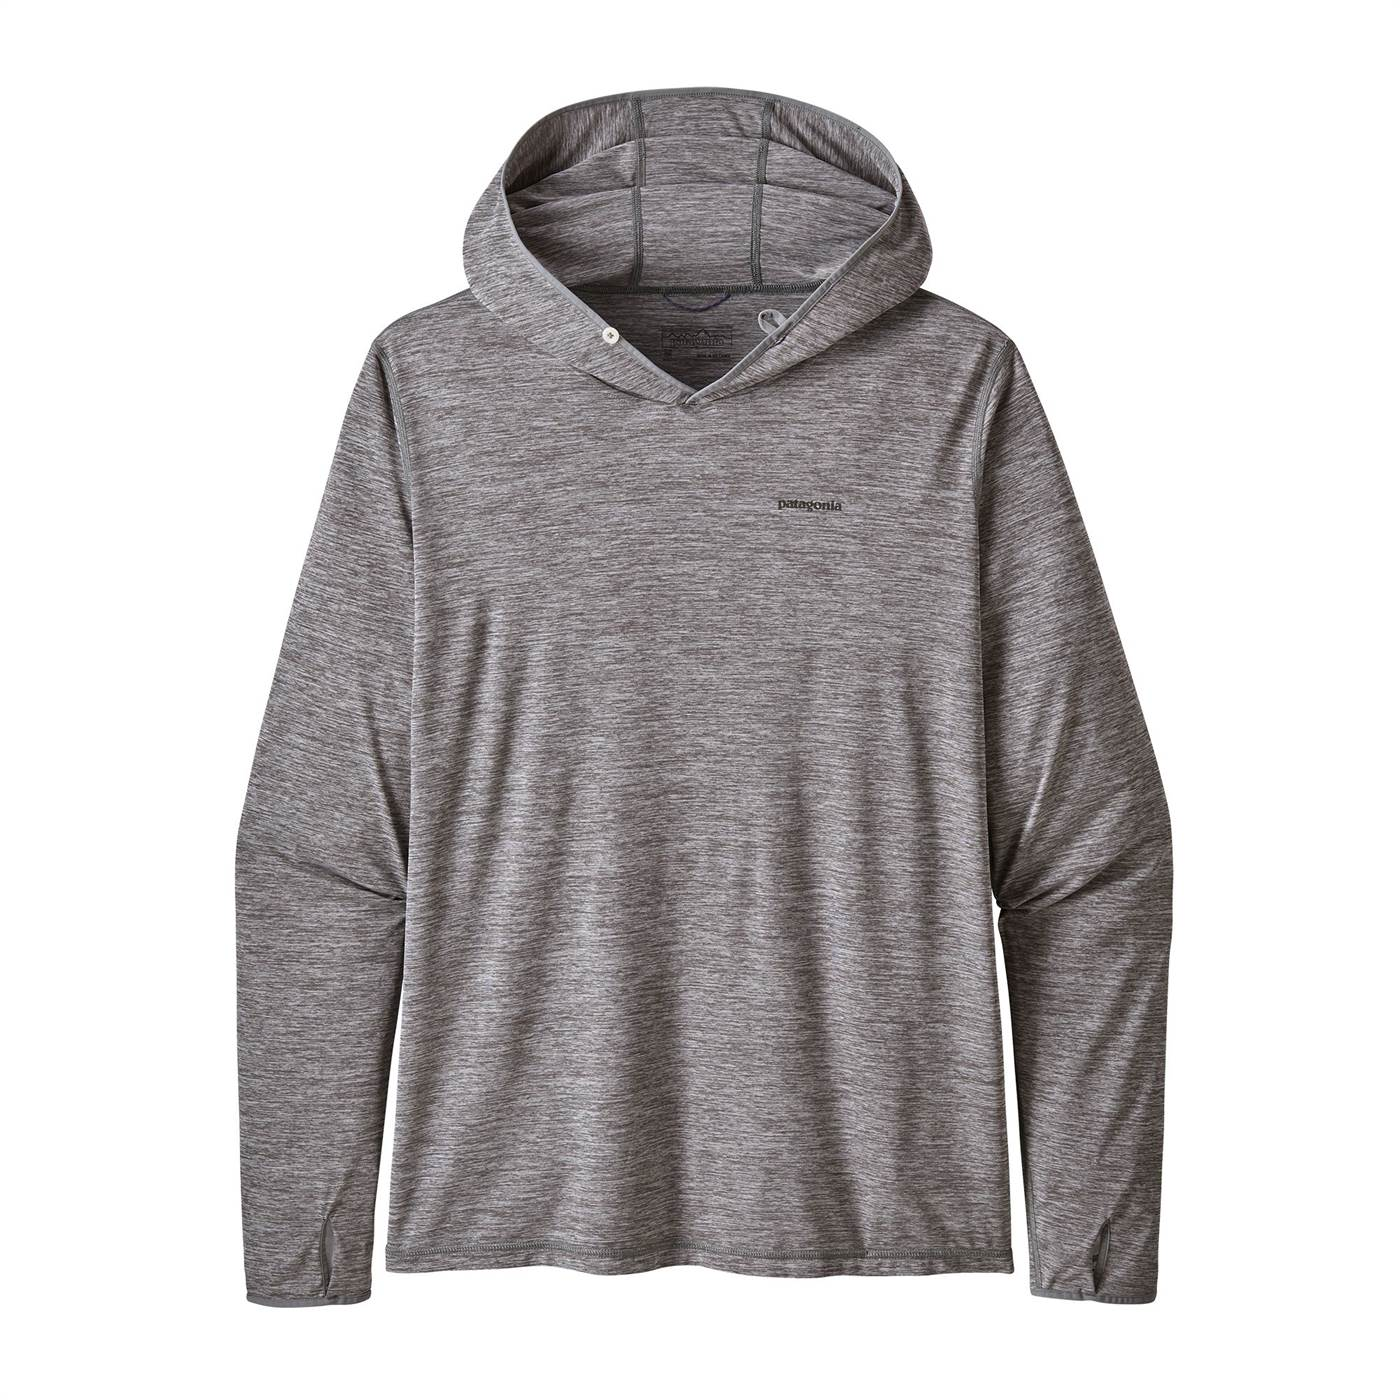 Tropic Comfort Hoody II - Men's